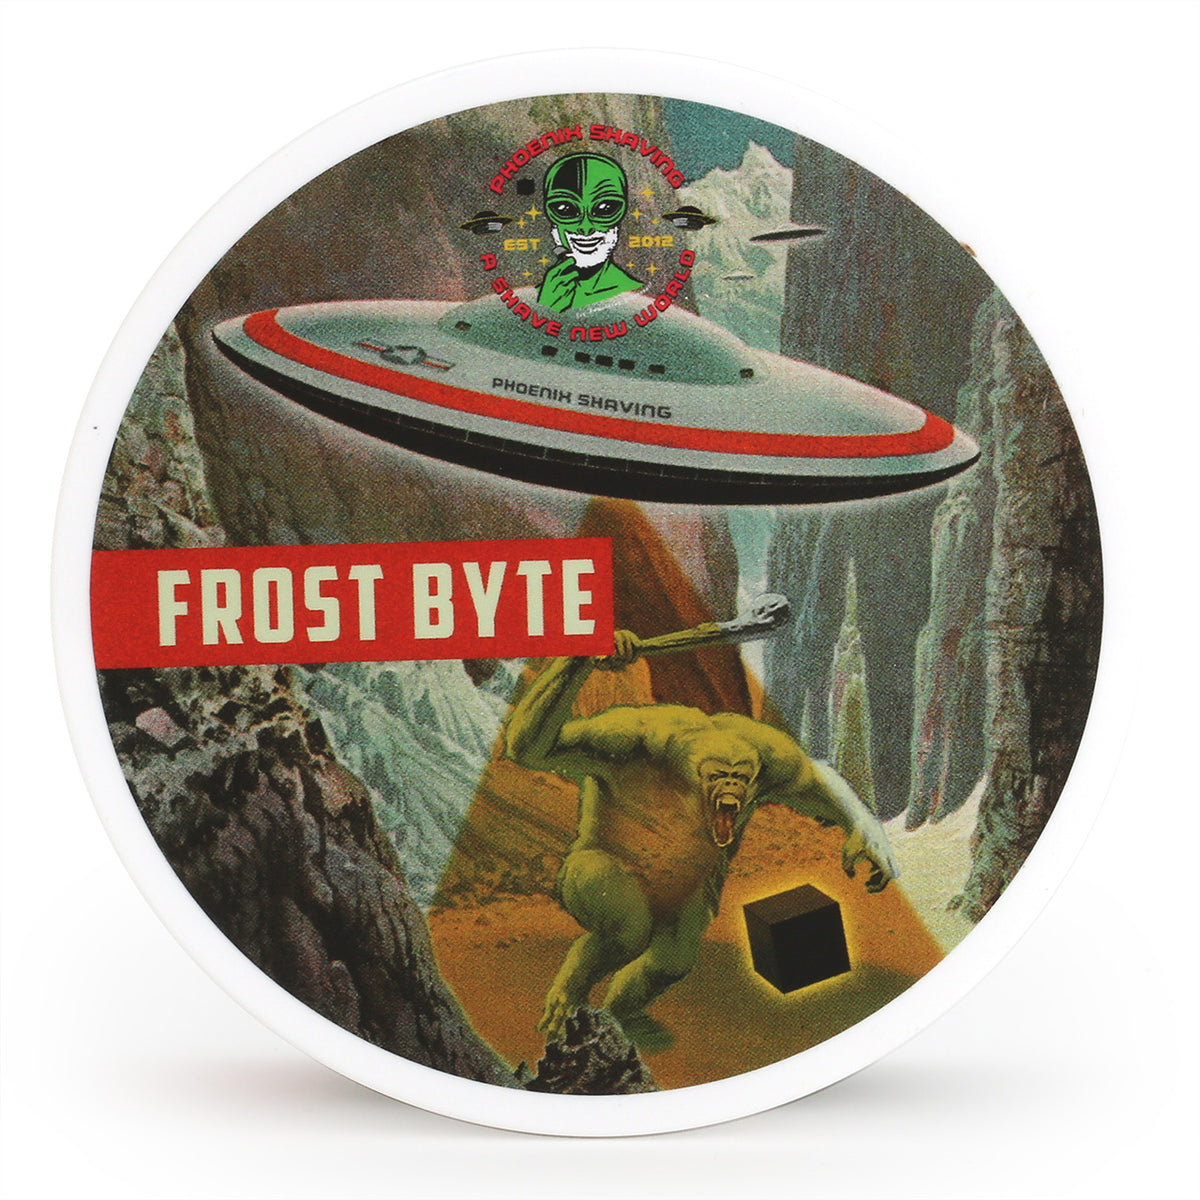 Phoenix Shaving Frost Byte Shave Soap tub with Alien-Landing label top view